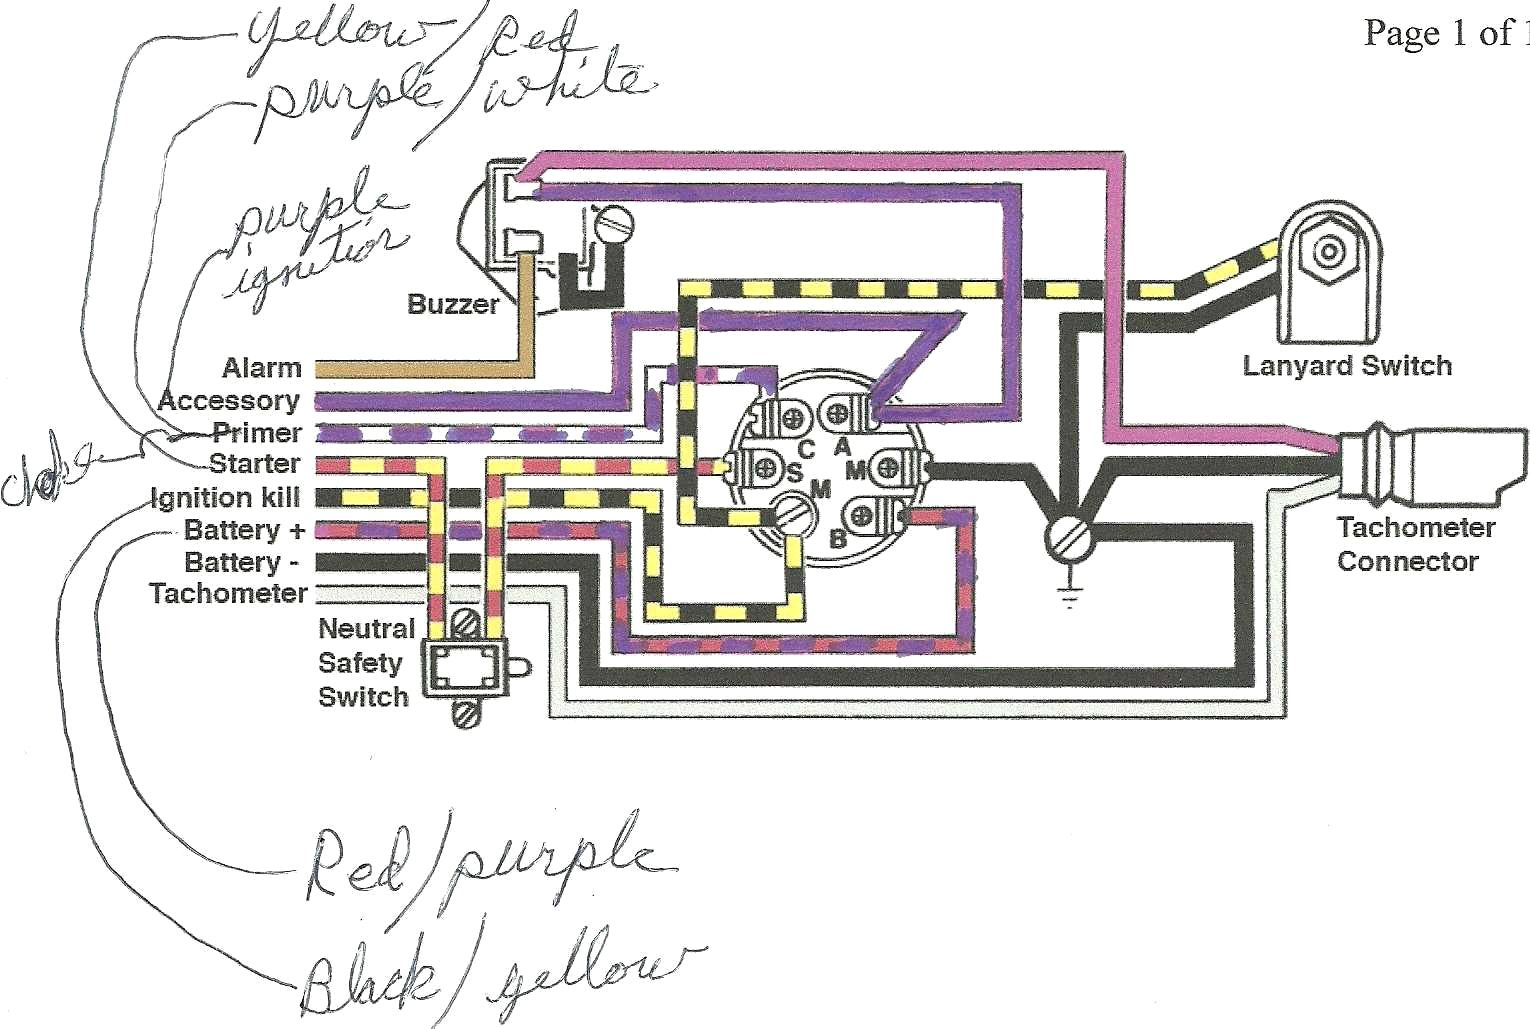 L Omc Ignition Wiring Diagram on omc 4.3 oil cooler, omc cobra 4.3 electrical wiring, omc 4.3 hose, omc 4.3 engine, omc 4.3 manual, omc cobra 4.3 battery connections,